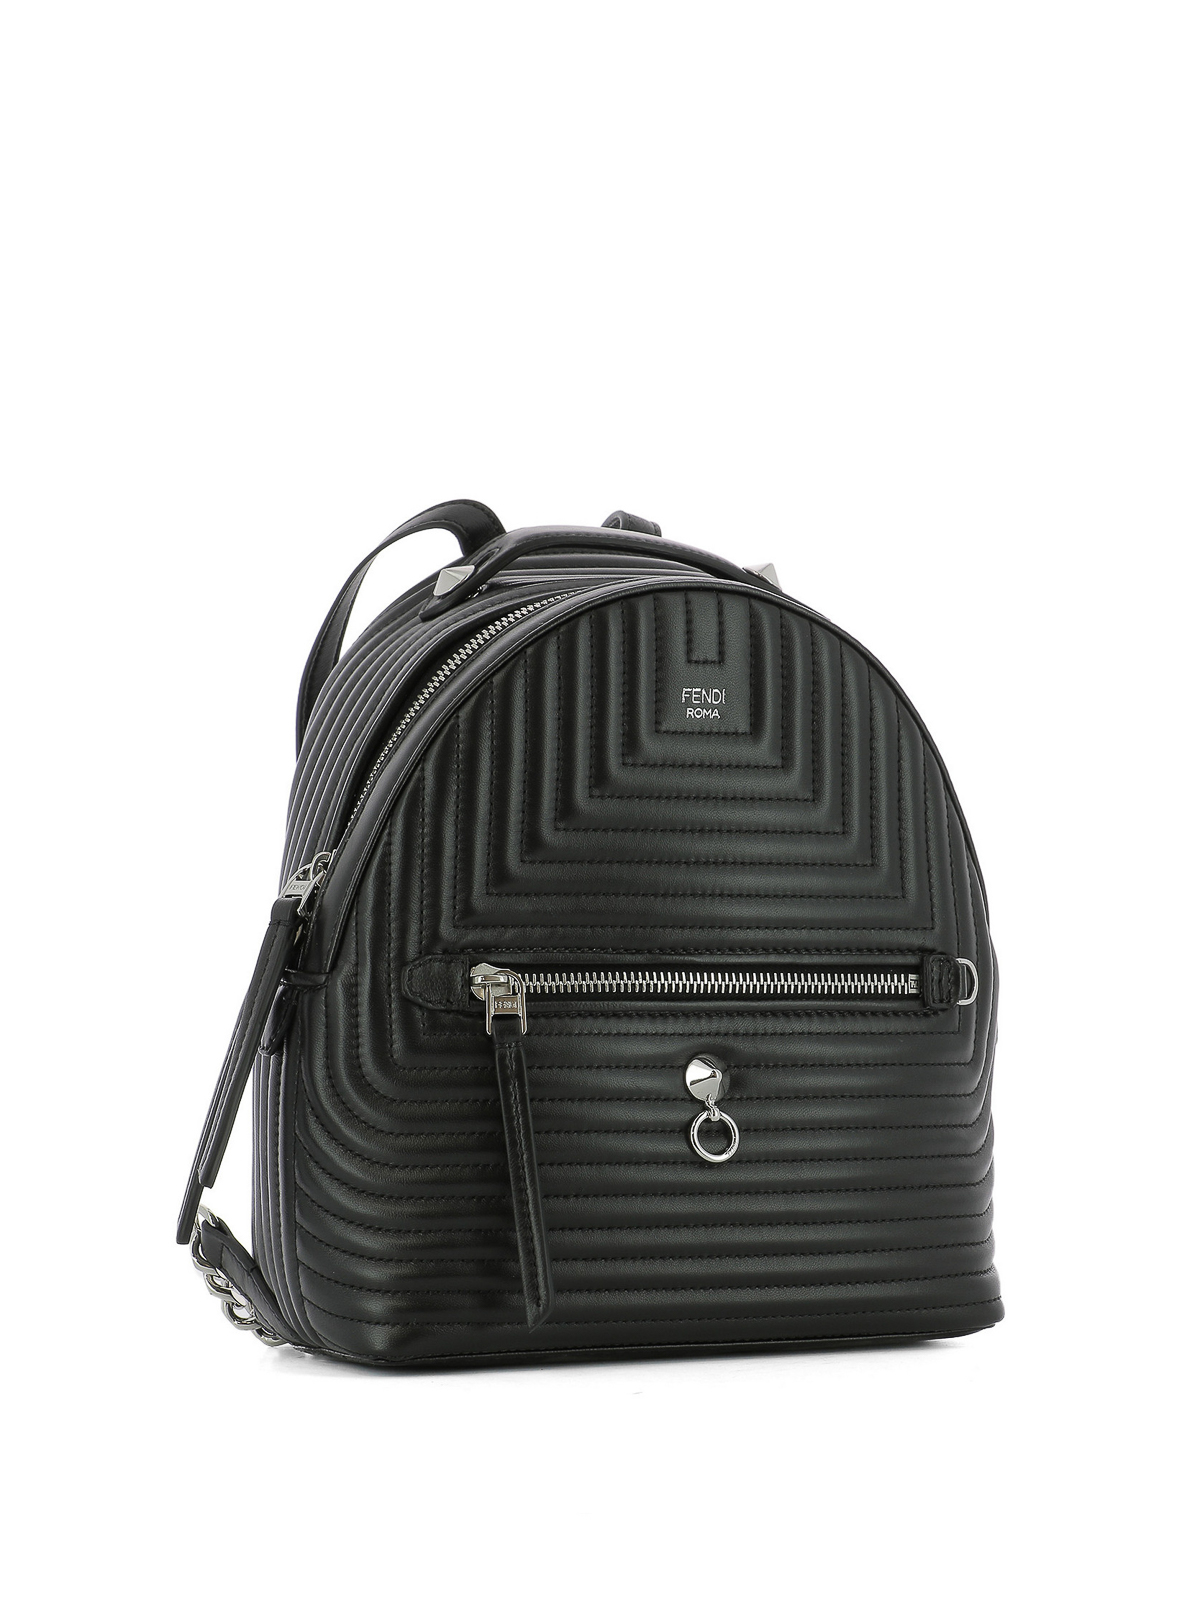 3969a55cd8d ... sale retailer 32880 1cd45 Fendi Quilted Leather Mini Backpack Backpacks  8bz038i8ff0gxn ...